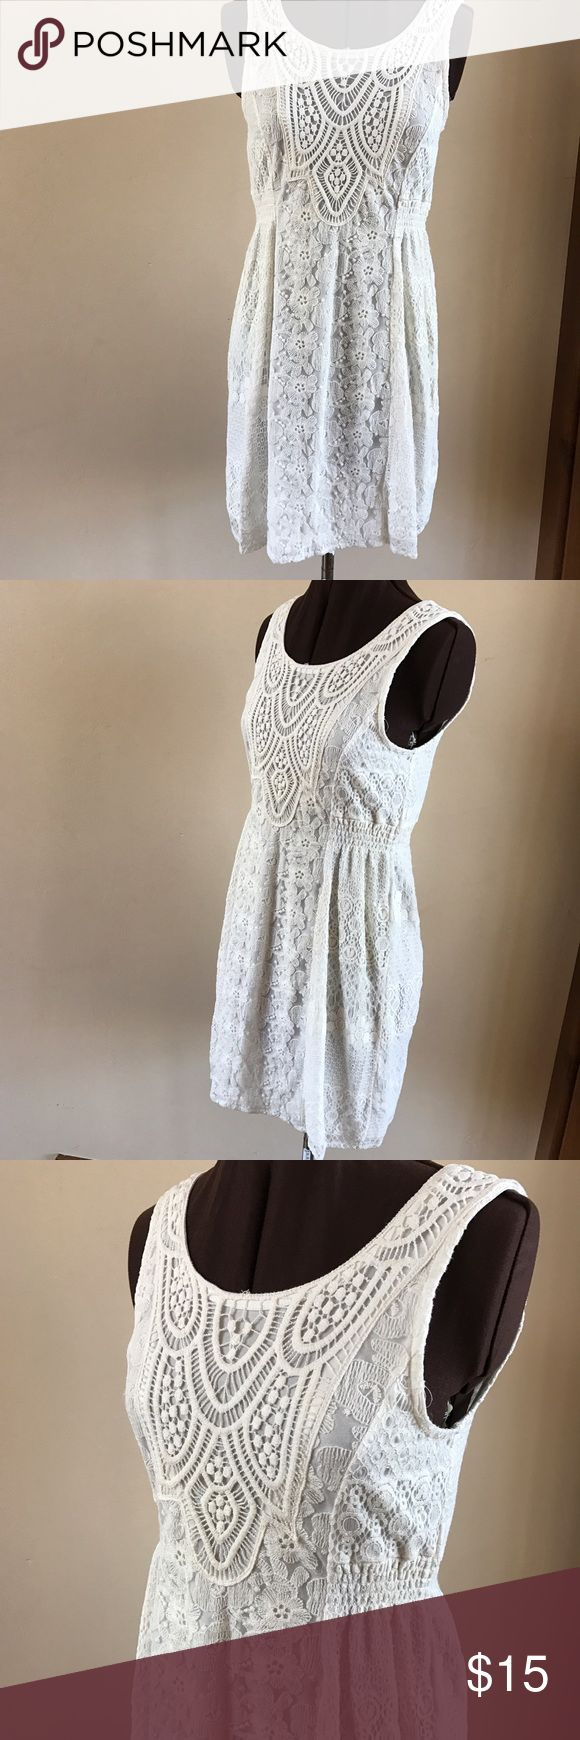 """OFF WHITE LACE LINED LACE DRESS Beautiful for summer weddings and parties. Off white lace dress is fully lined and a full back zipper. Size Small. Approx measures 15.5"""" under arms, 14"""" waist and 34.5"""" overall length. Solitaire Dresses"""